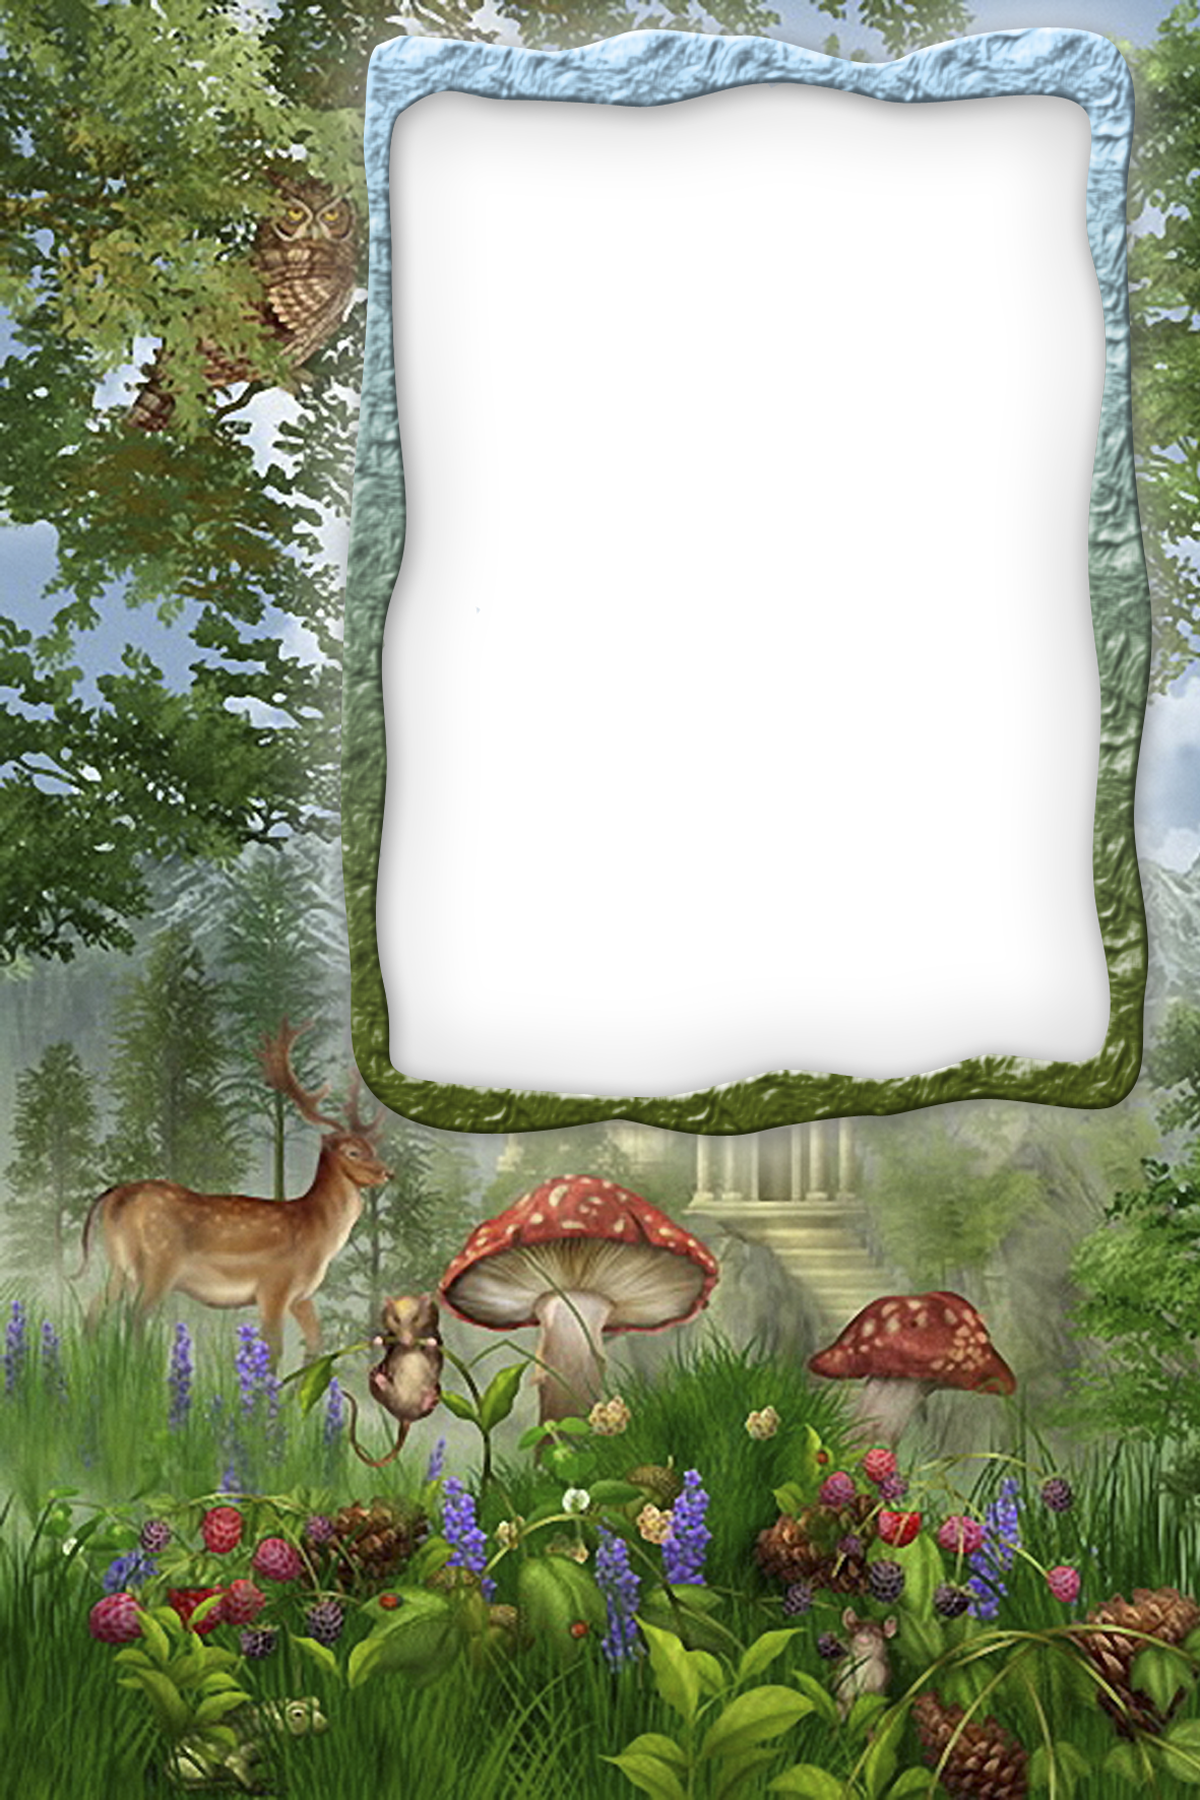 Forest clipart forest border. Transparent frame gallery yopriceville